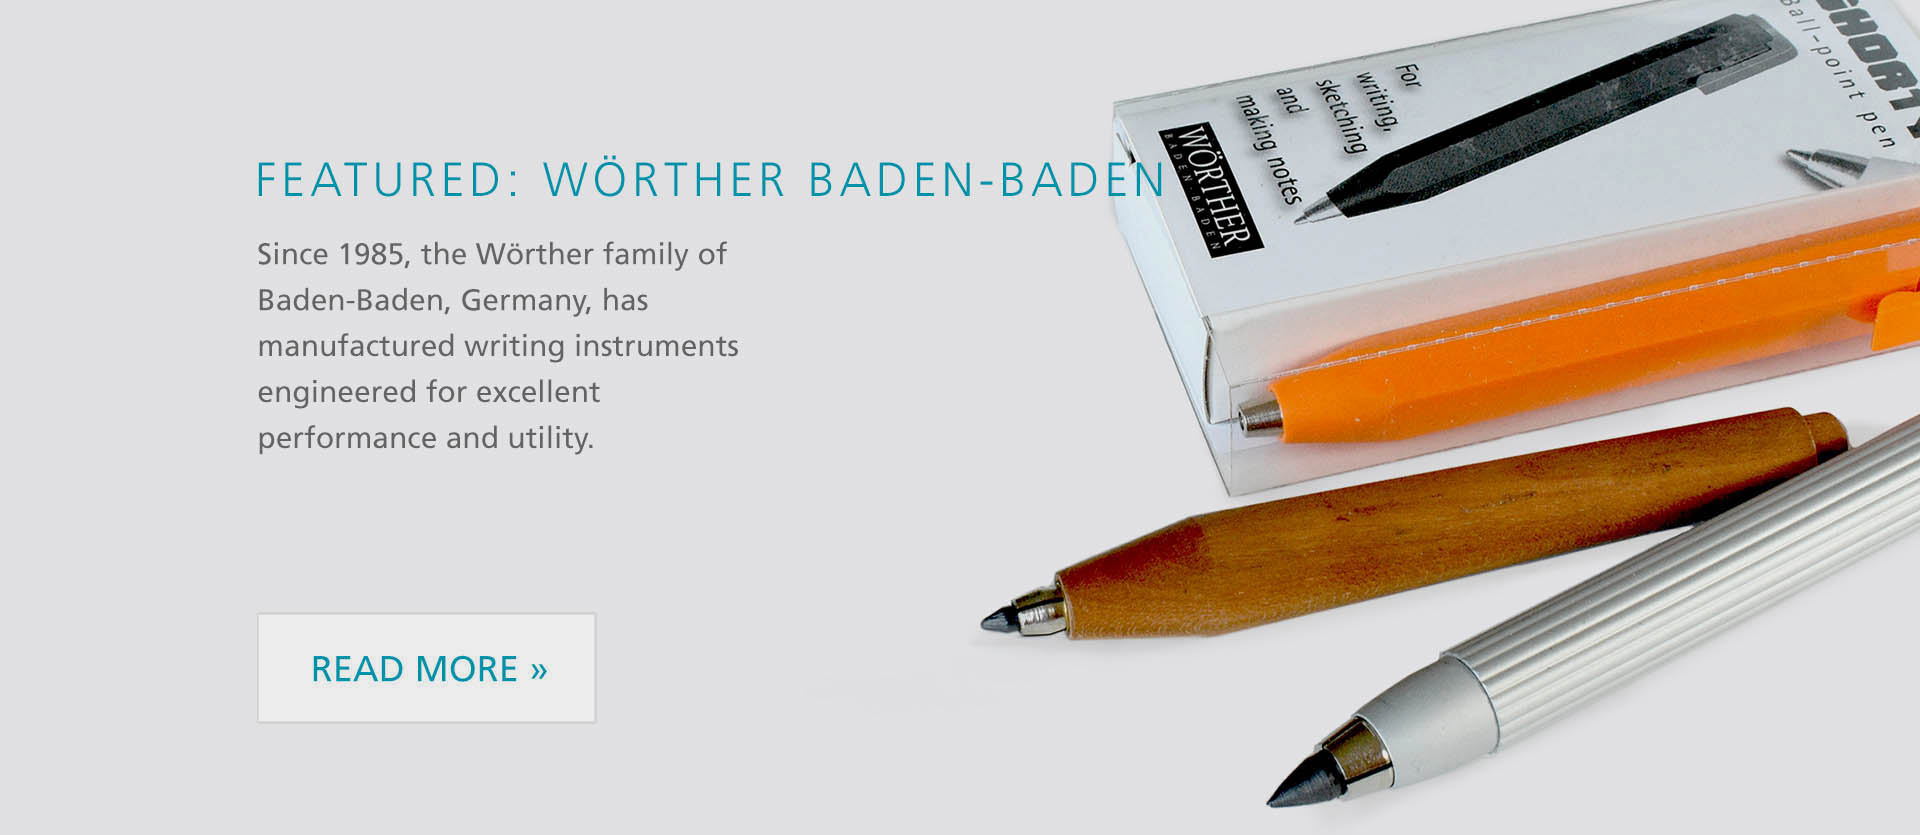 Featured brand Wörther Baden-Baden, Pencils, Pens!